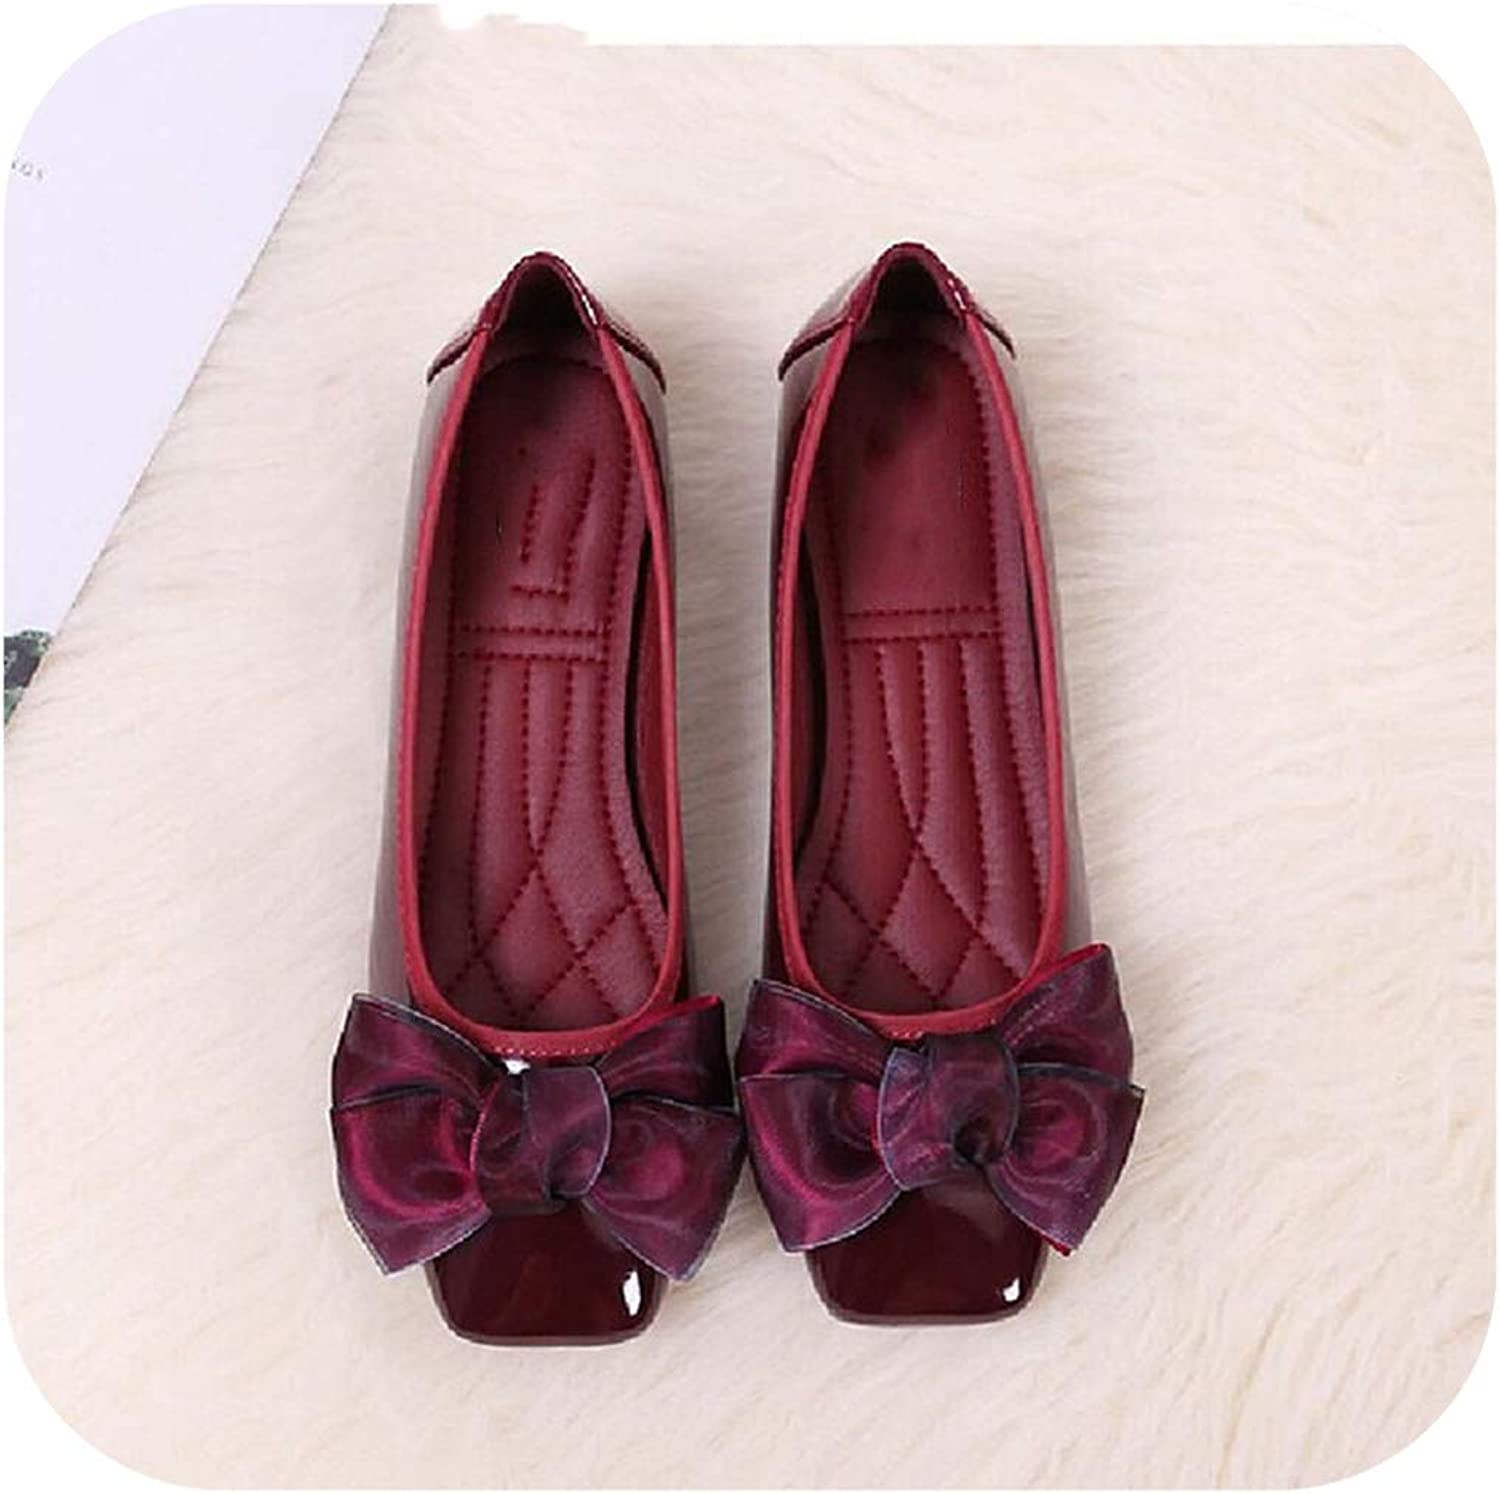 Harajuku shoes Square Toe Flat shoes Women Mesh Butterfly-Knot Patent Leather Loafers Women Luxury shoes